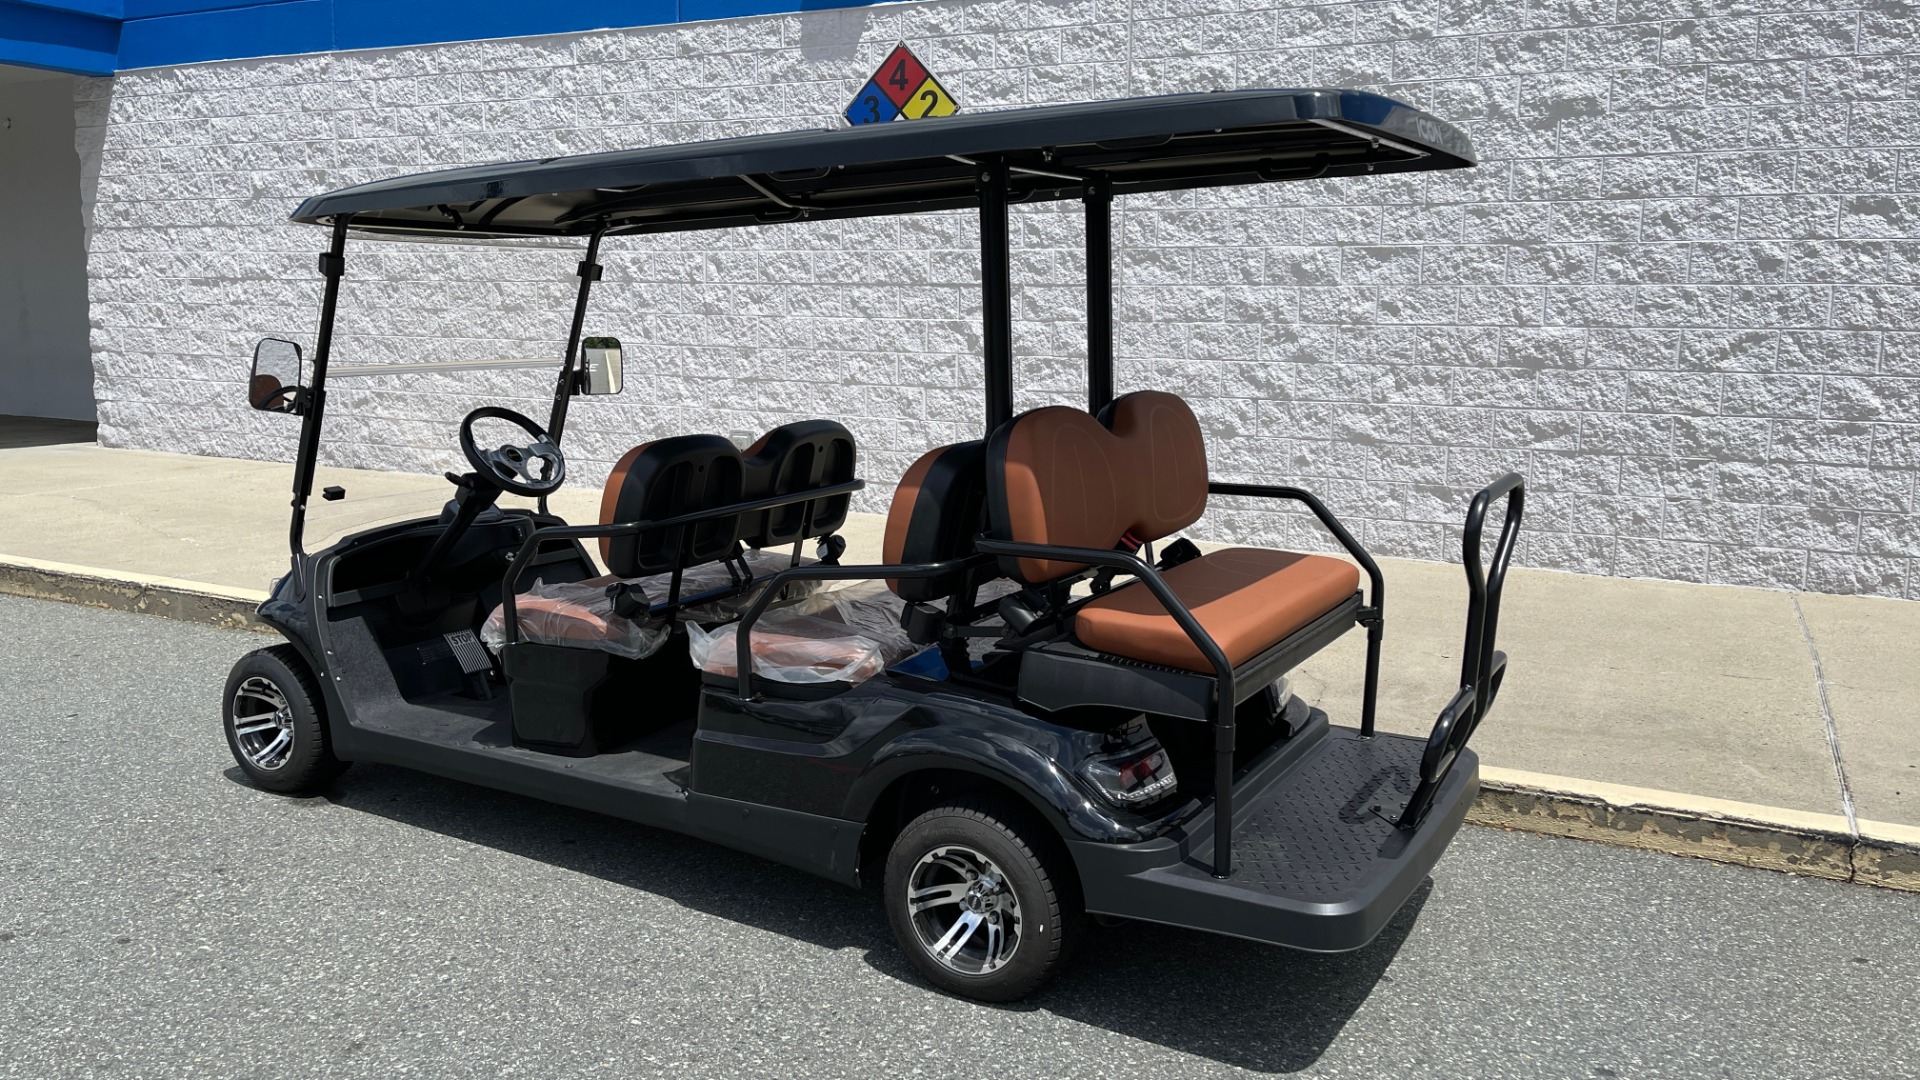 Used 2021 ICON i60 ELECTRIC CAR / 6-PASSENGER GOLF CART / 25MPH / NEW / 1-MILE for sale $10,999 at Formula Imports in Charlotte NC 28227 2